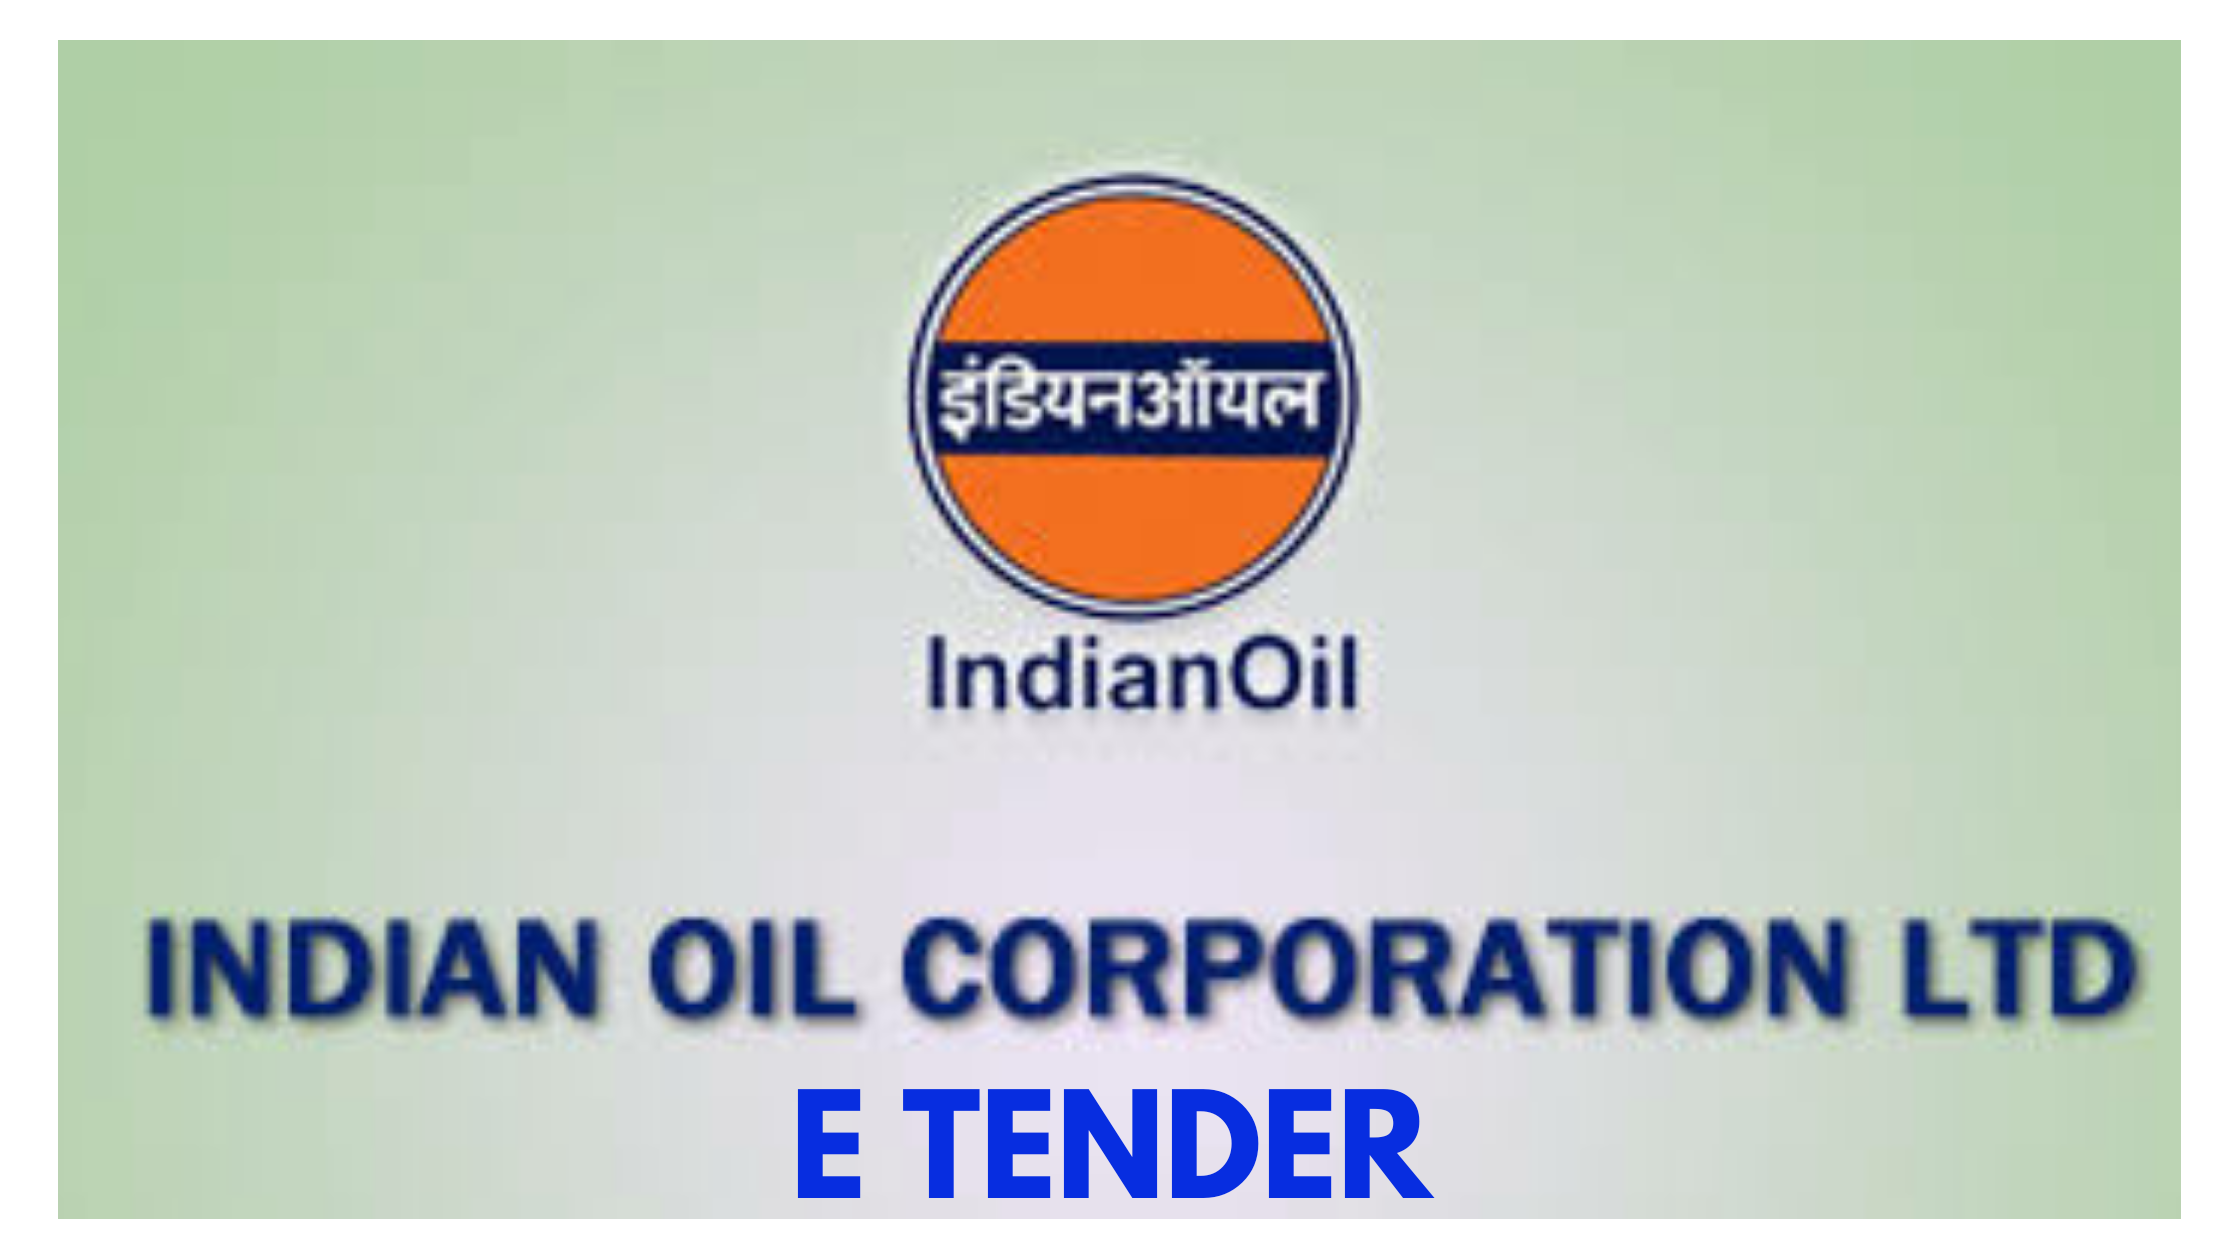 How to register in IOCL as a Vendor | iocl e tender registration